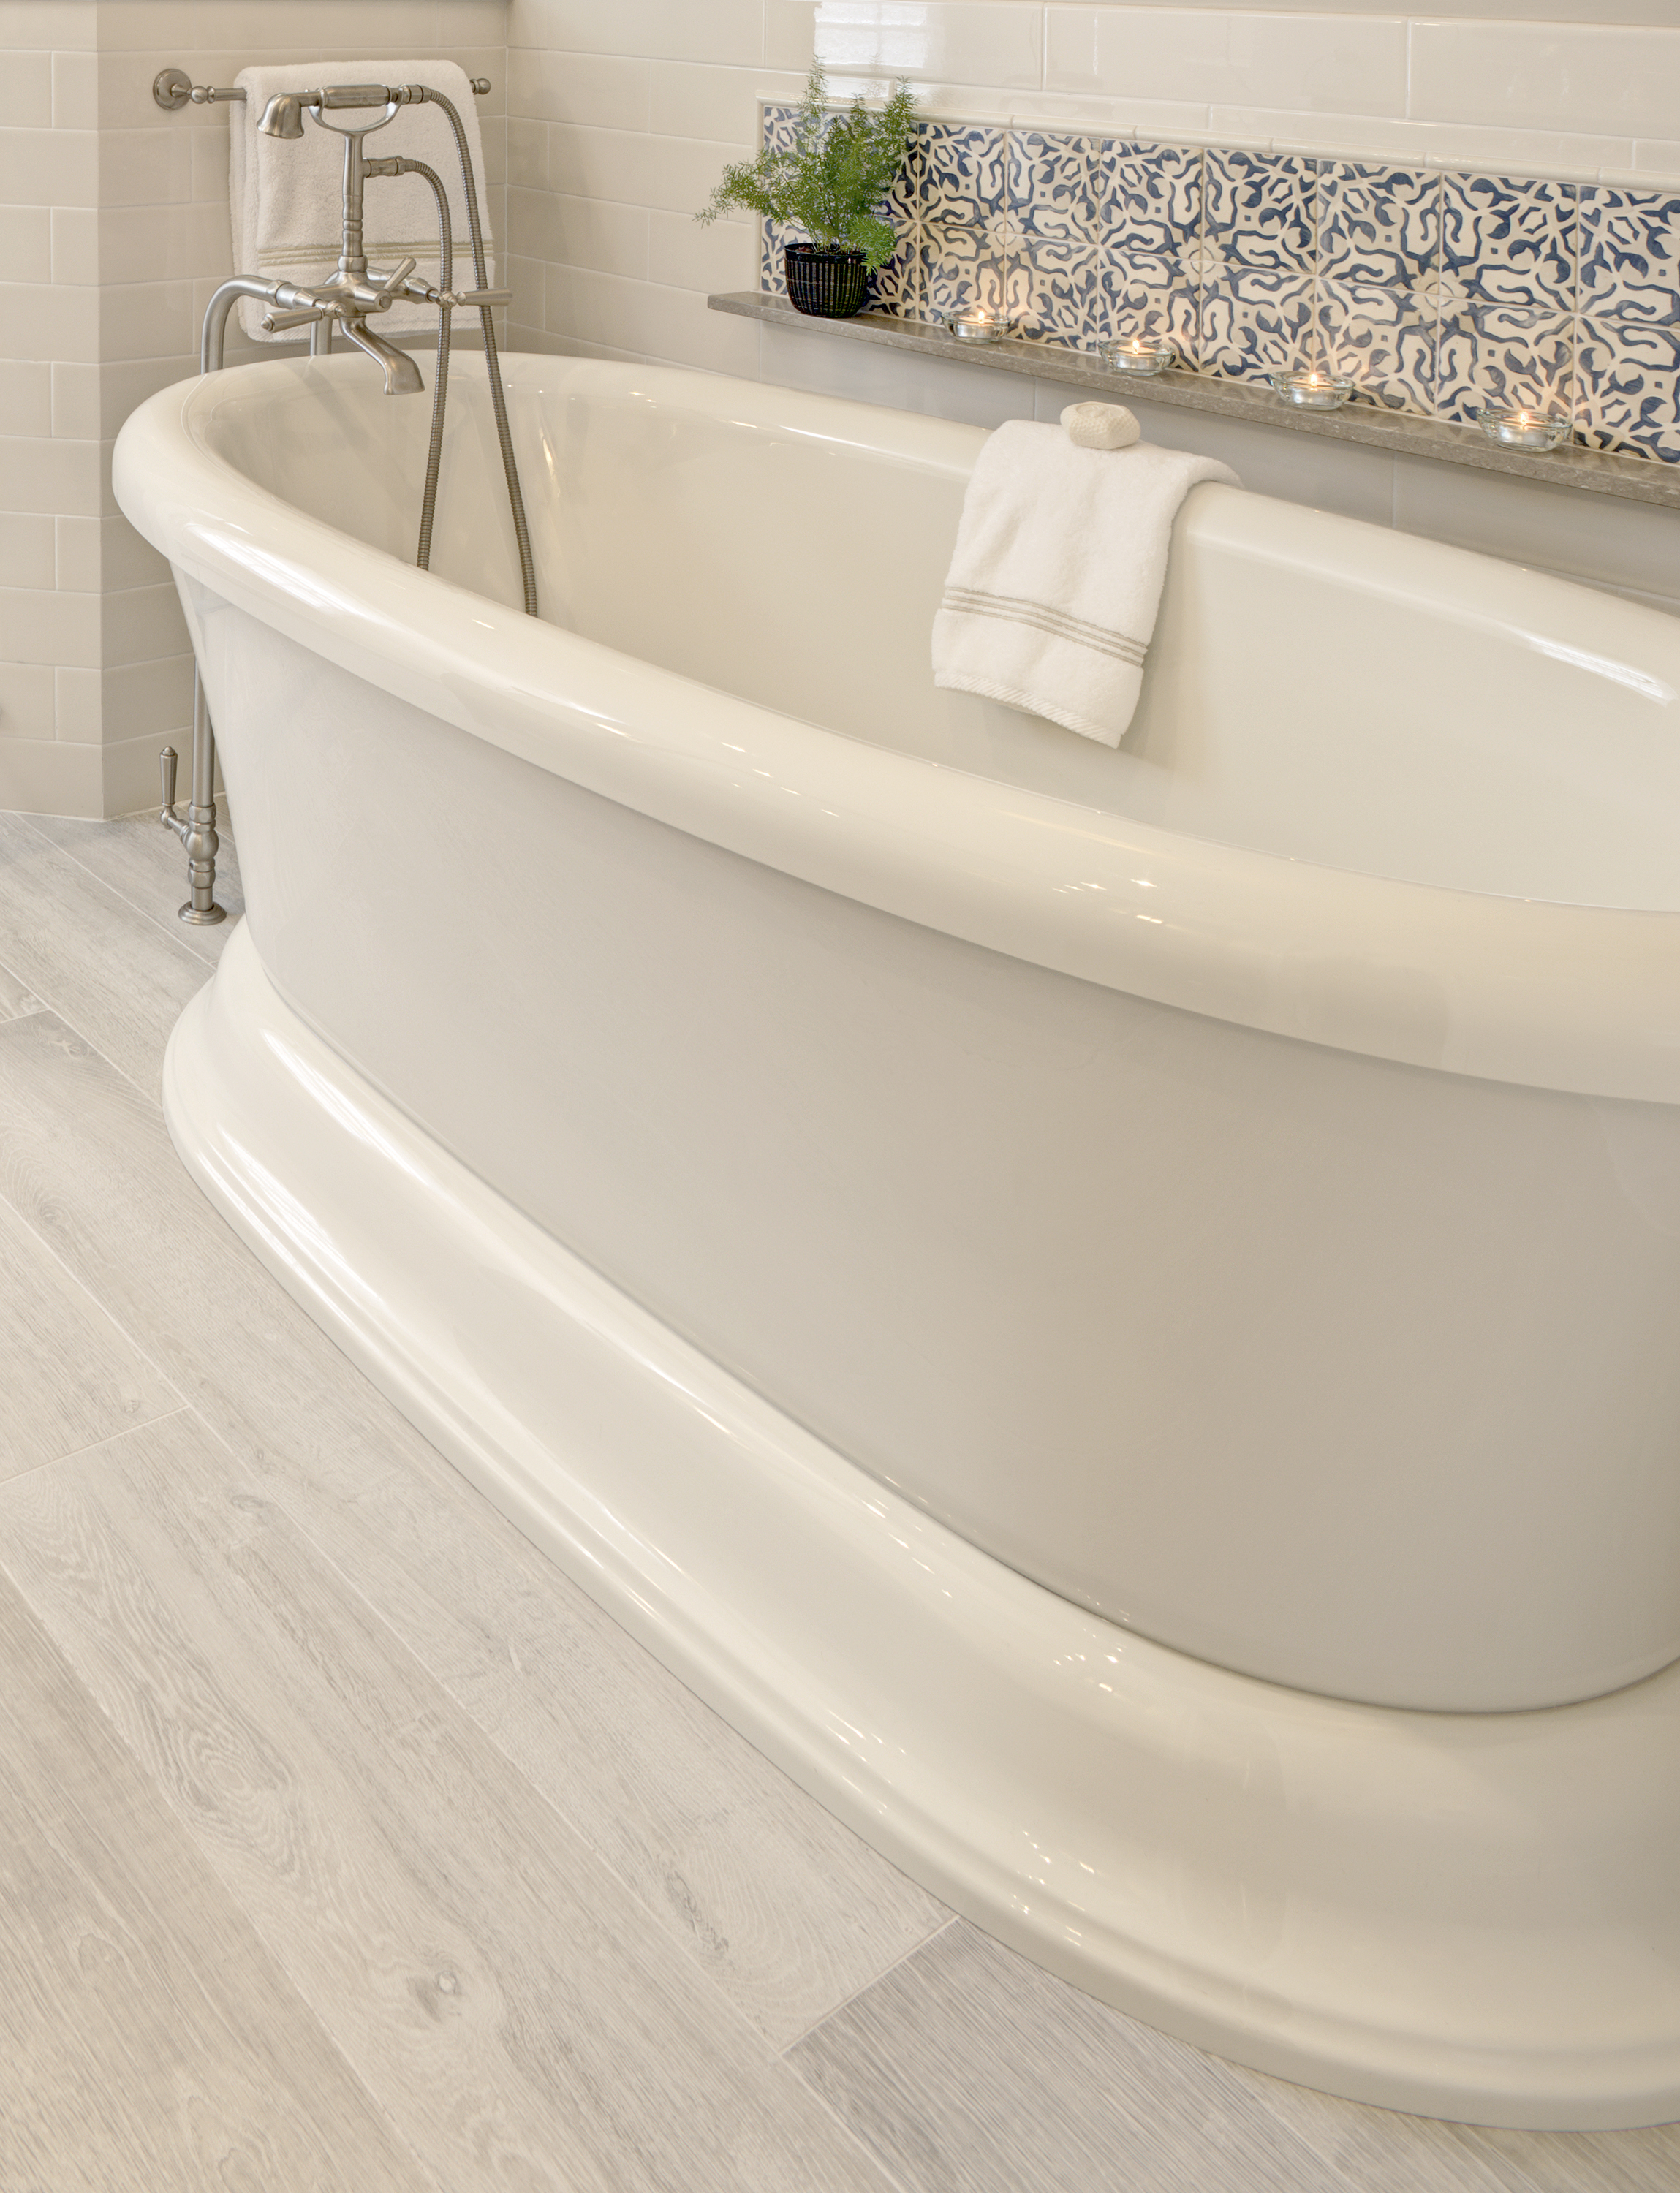 SIC Bath Tub Close Up.jpg